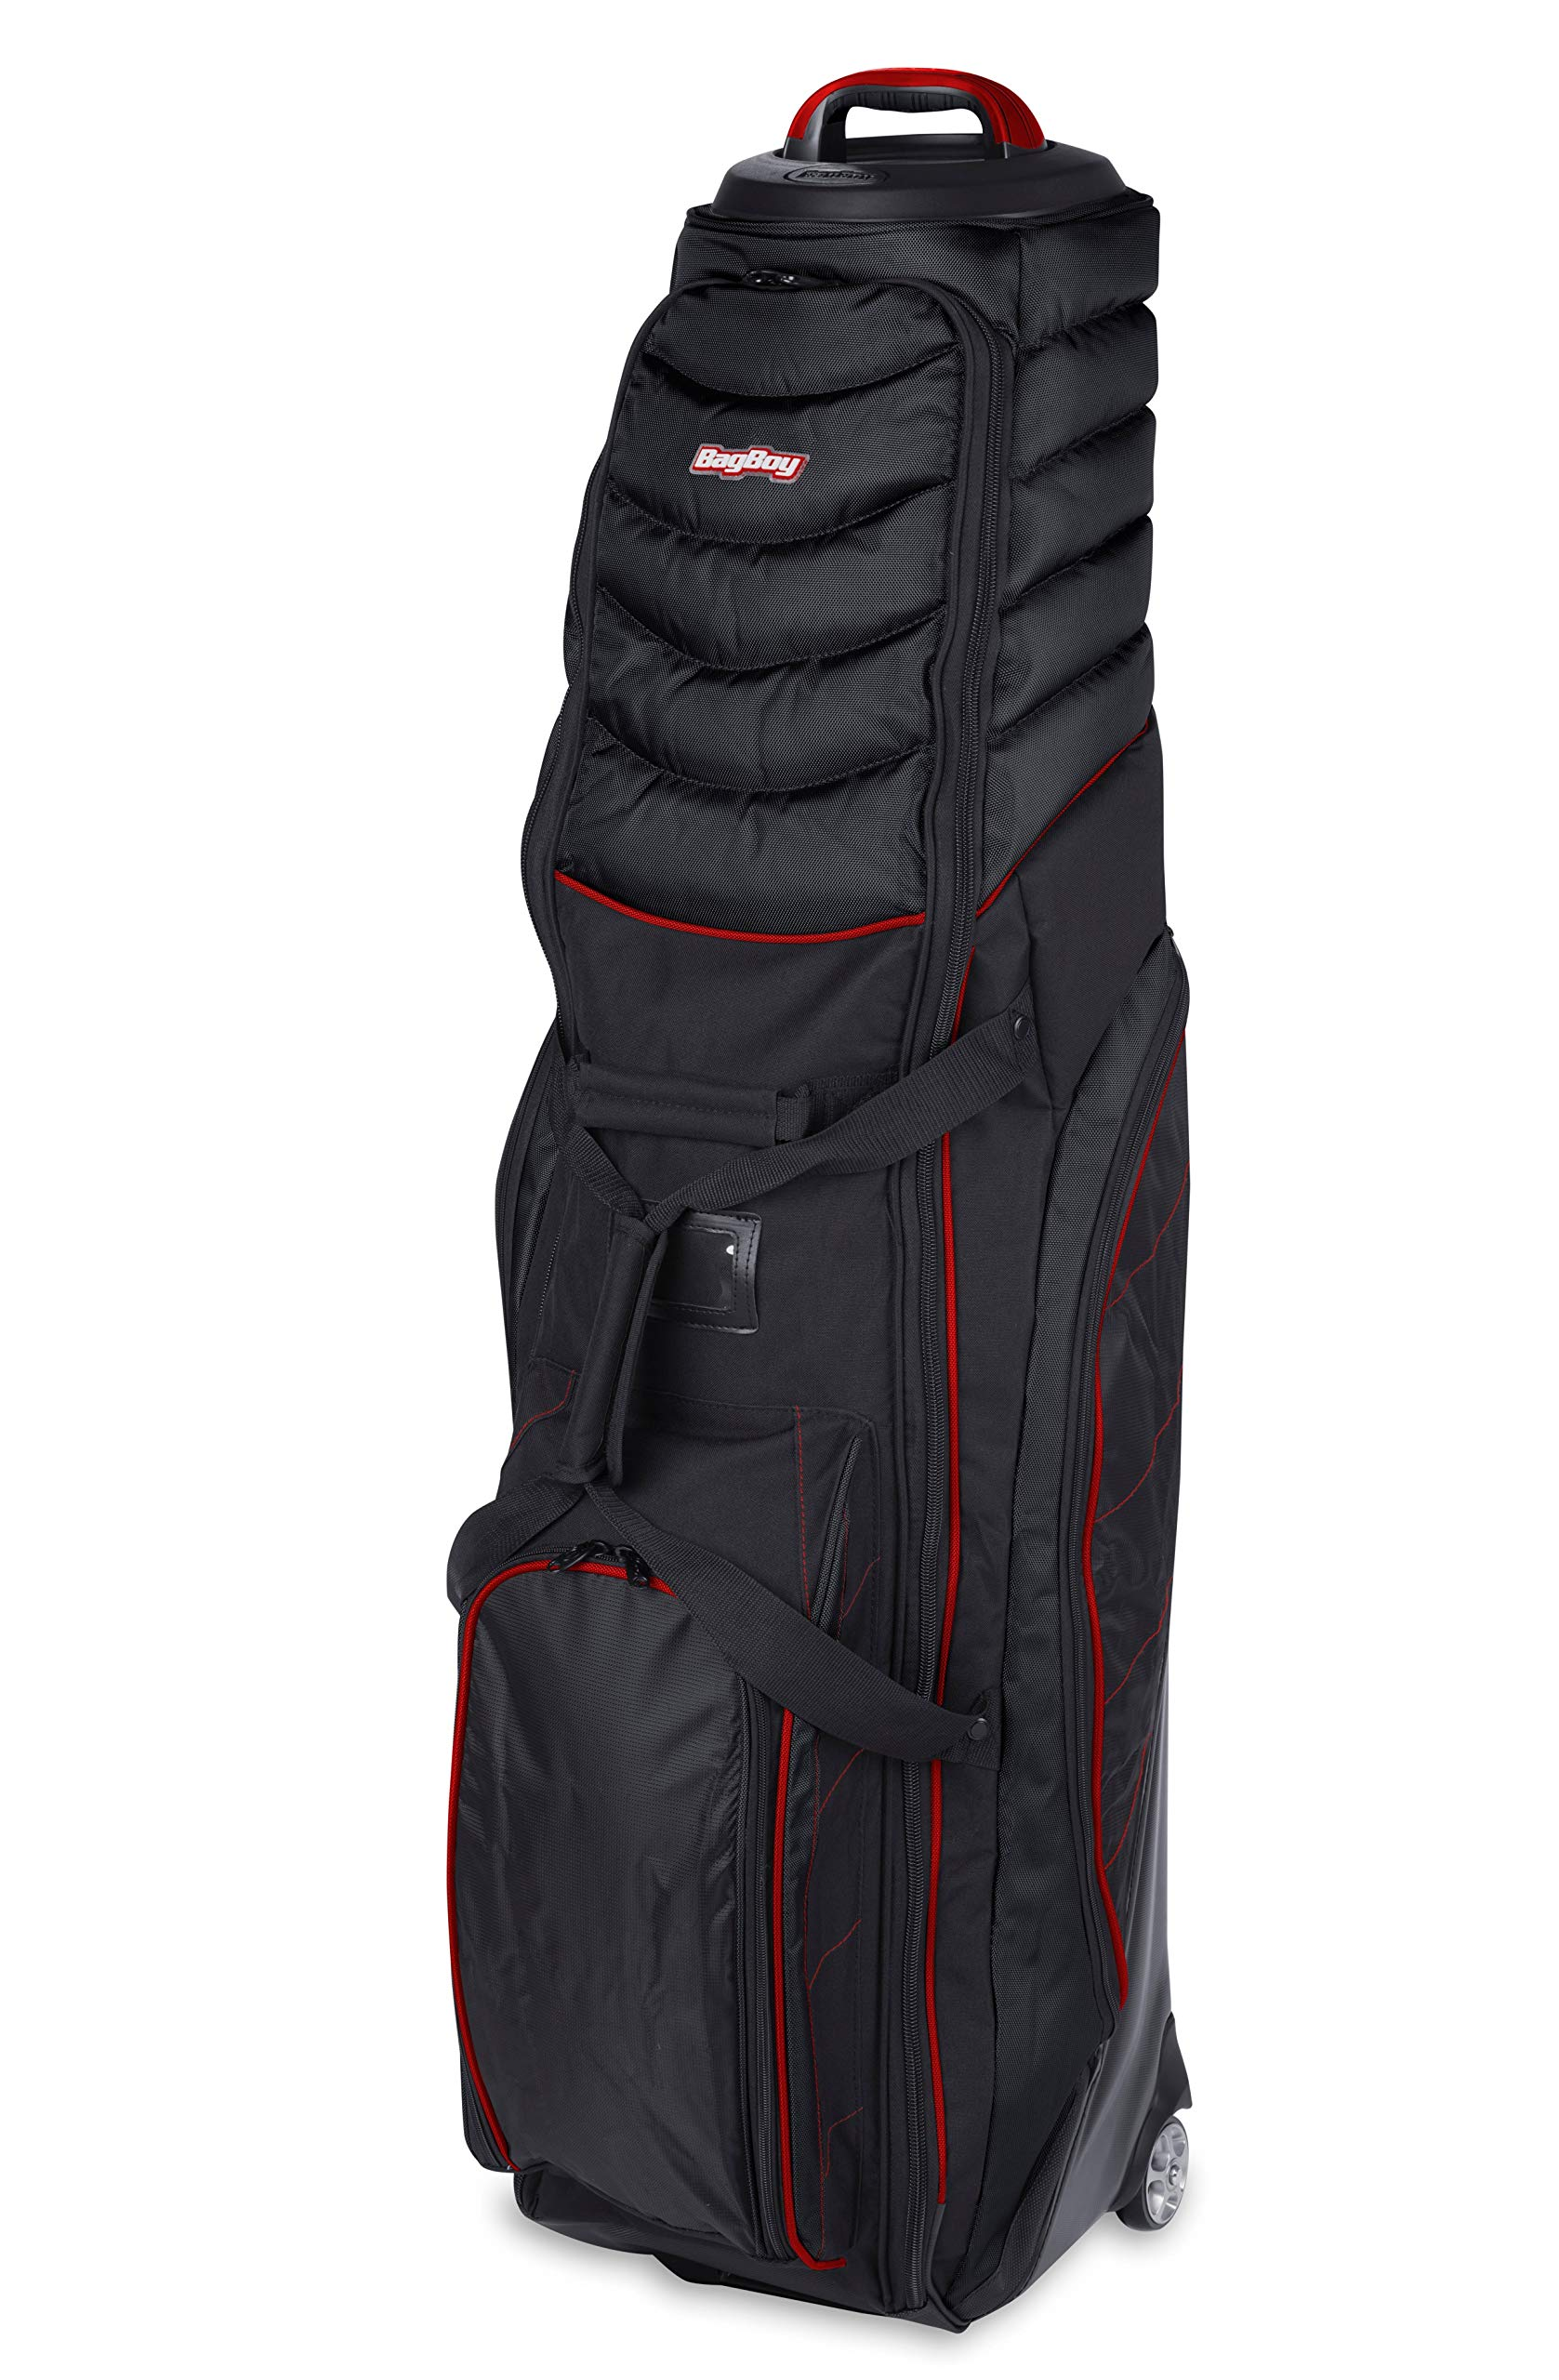 Bag Boy Unisex T-2000 Travel Cover Black/Red